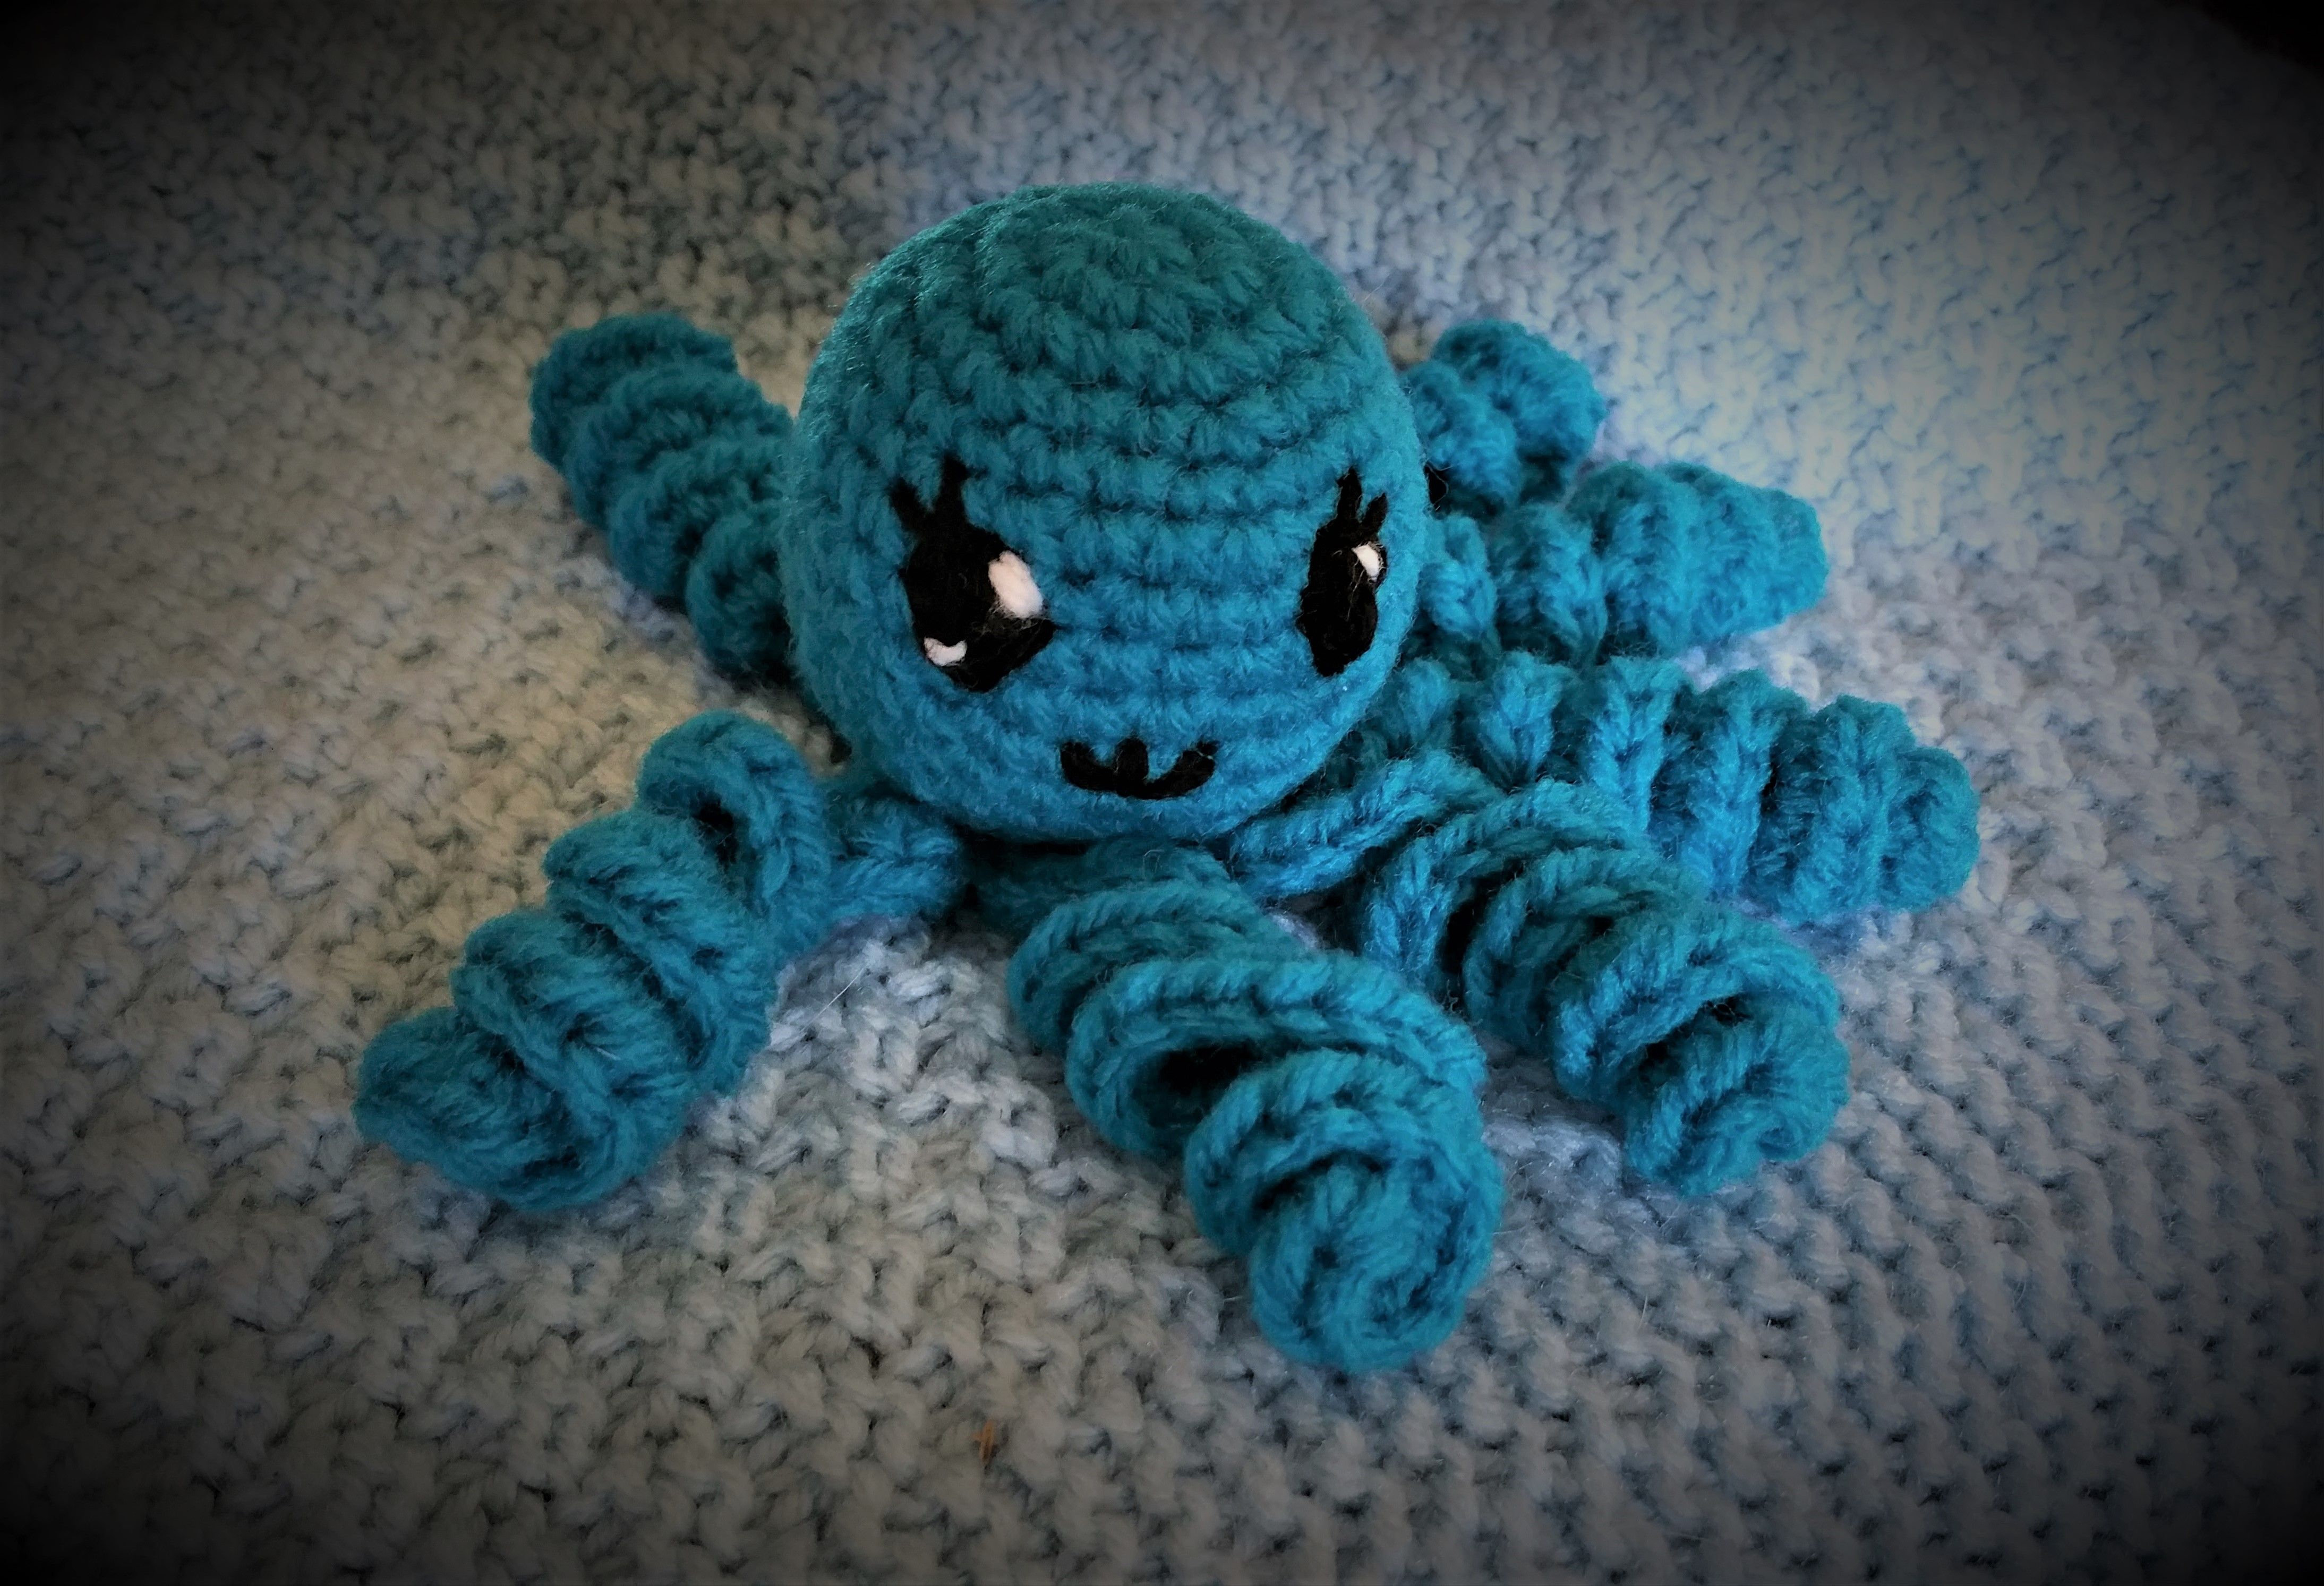 ~Octavia the Octopus~ Price: $3 + S&H